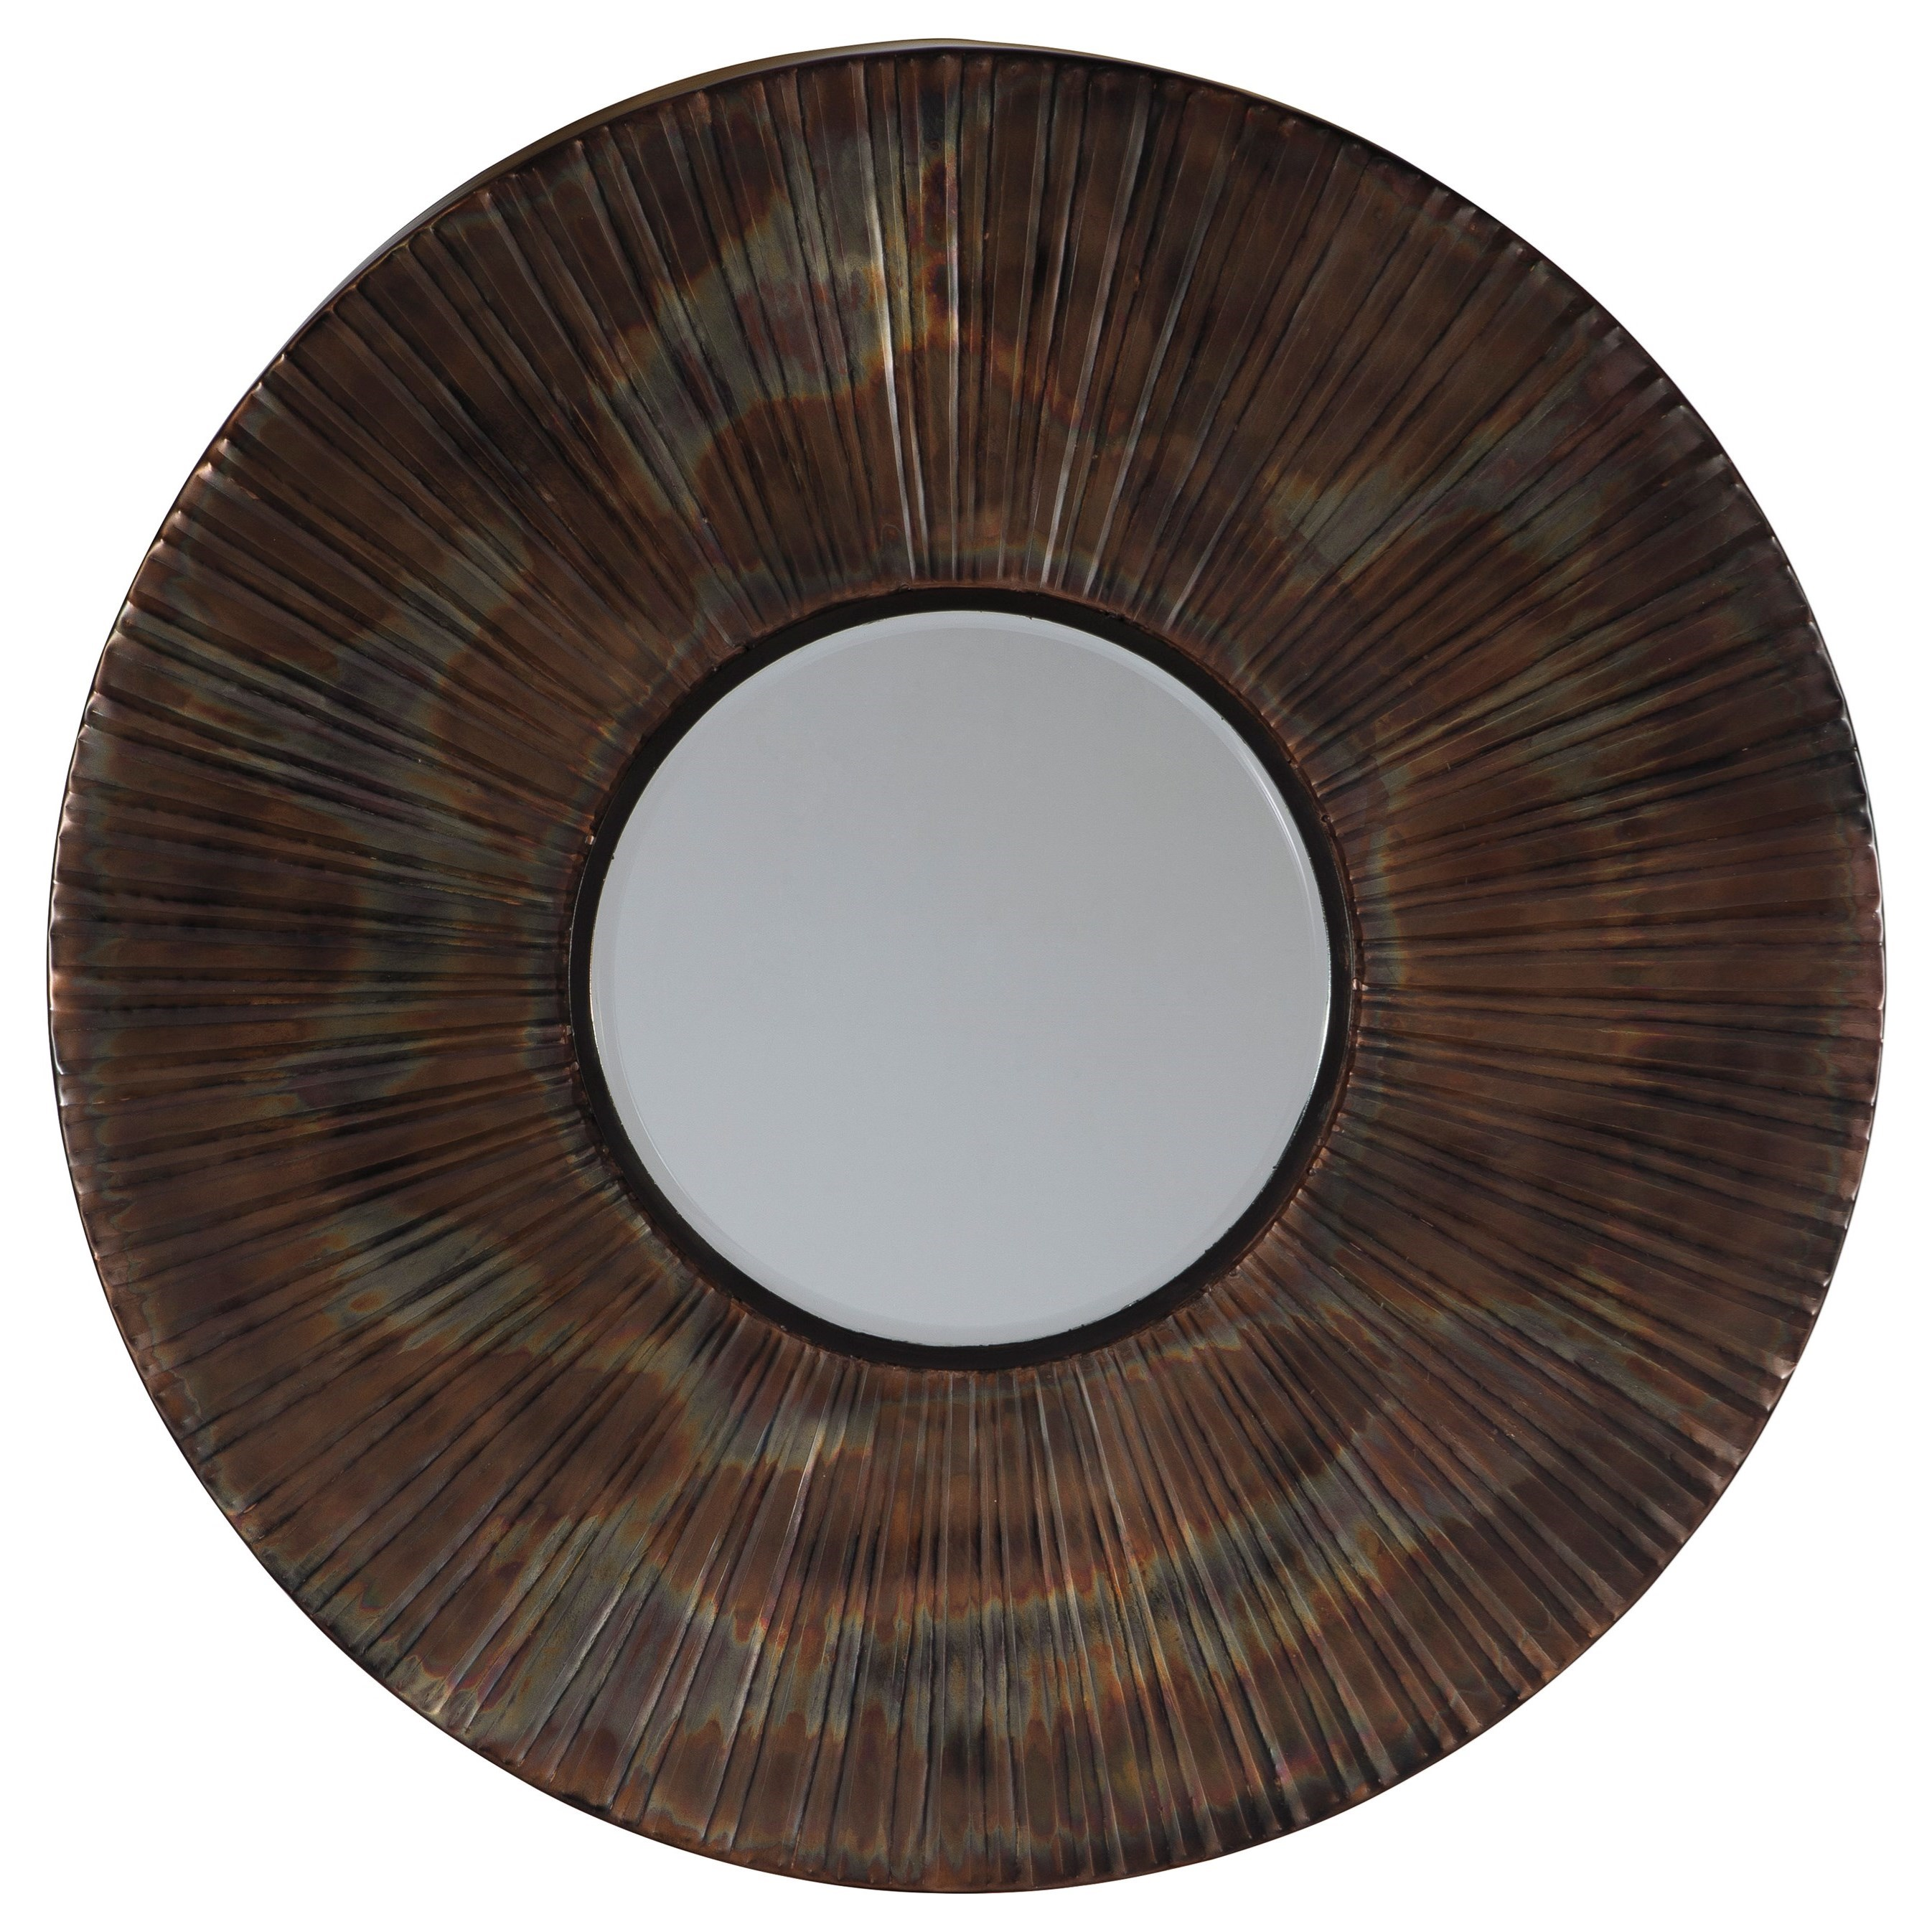 Bartleby Copper/Bronze Finish Accent Mirror